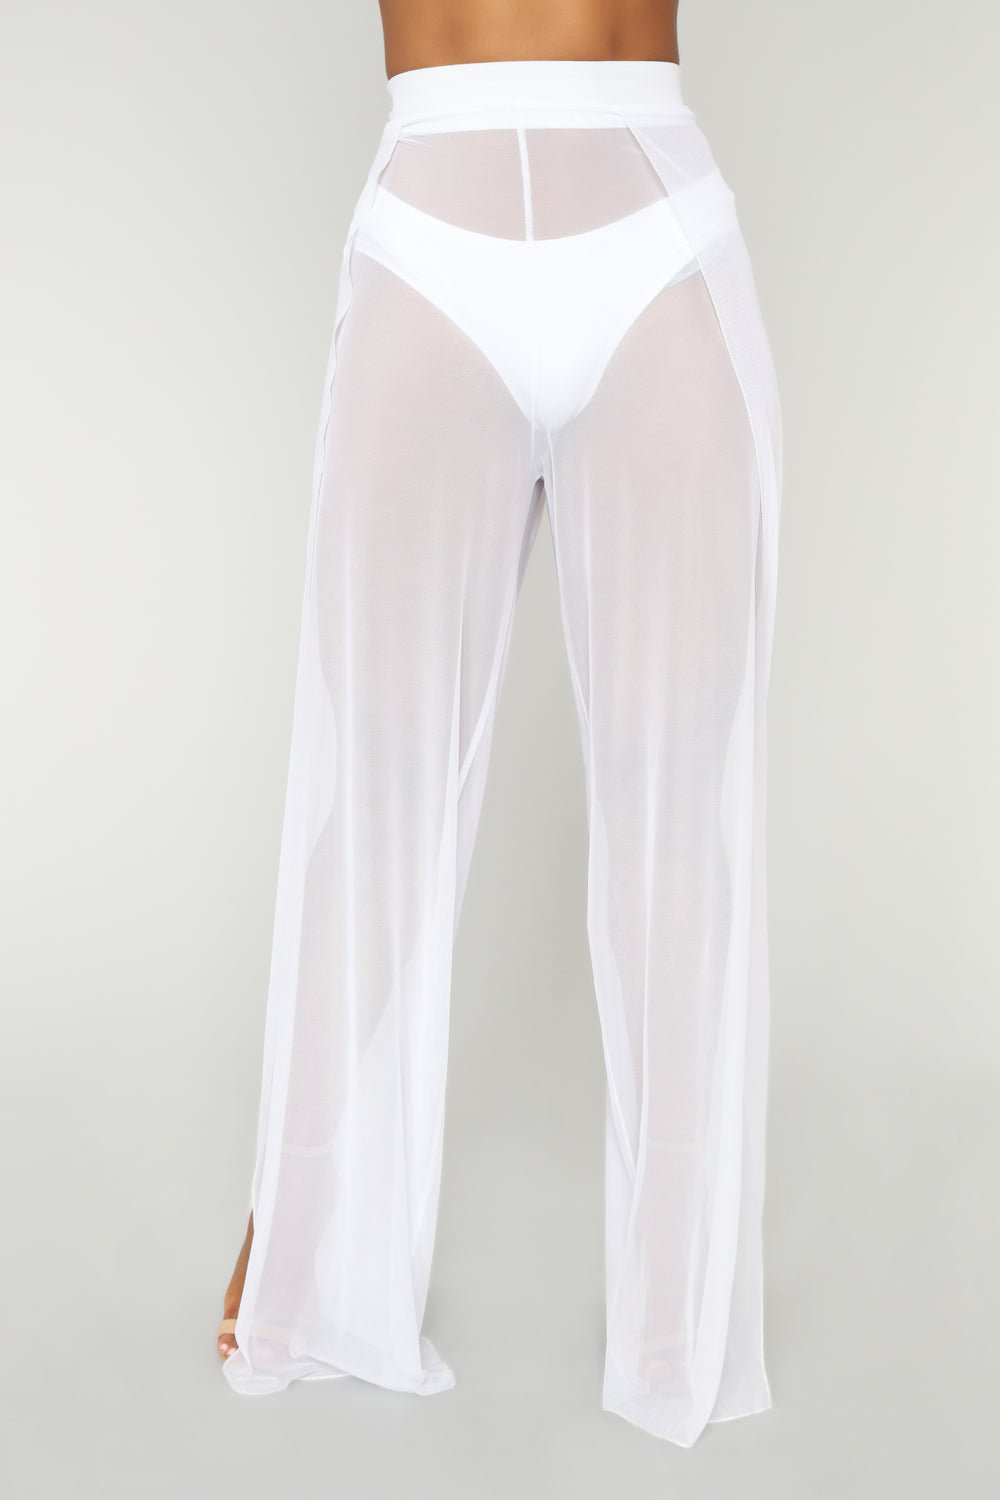 Among The Coast Cover-Up Pant - White